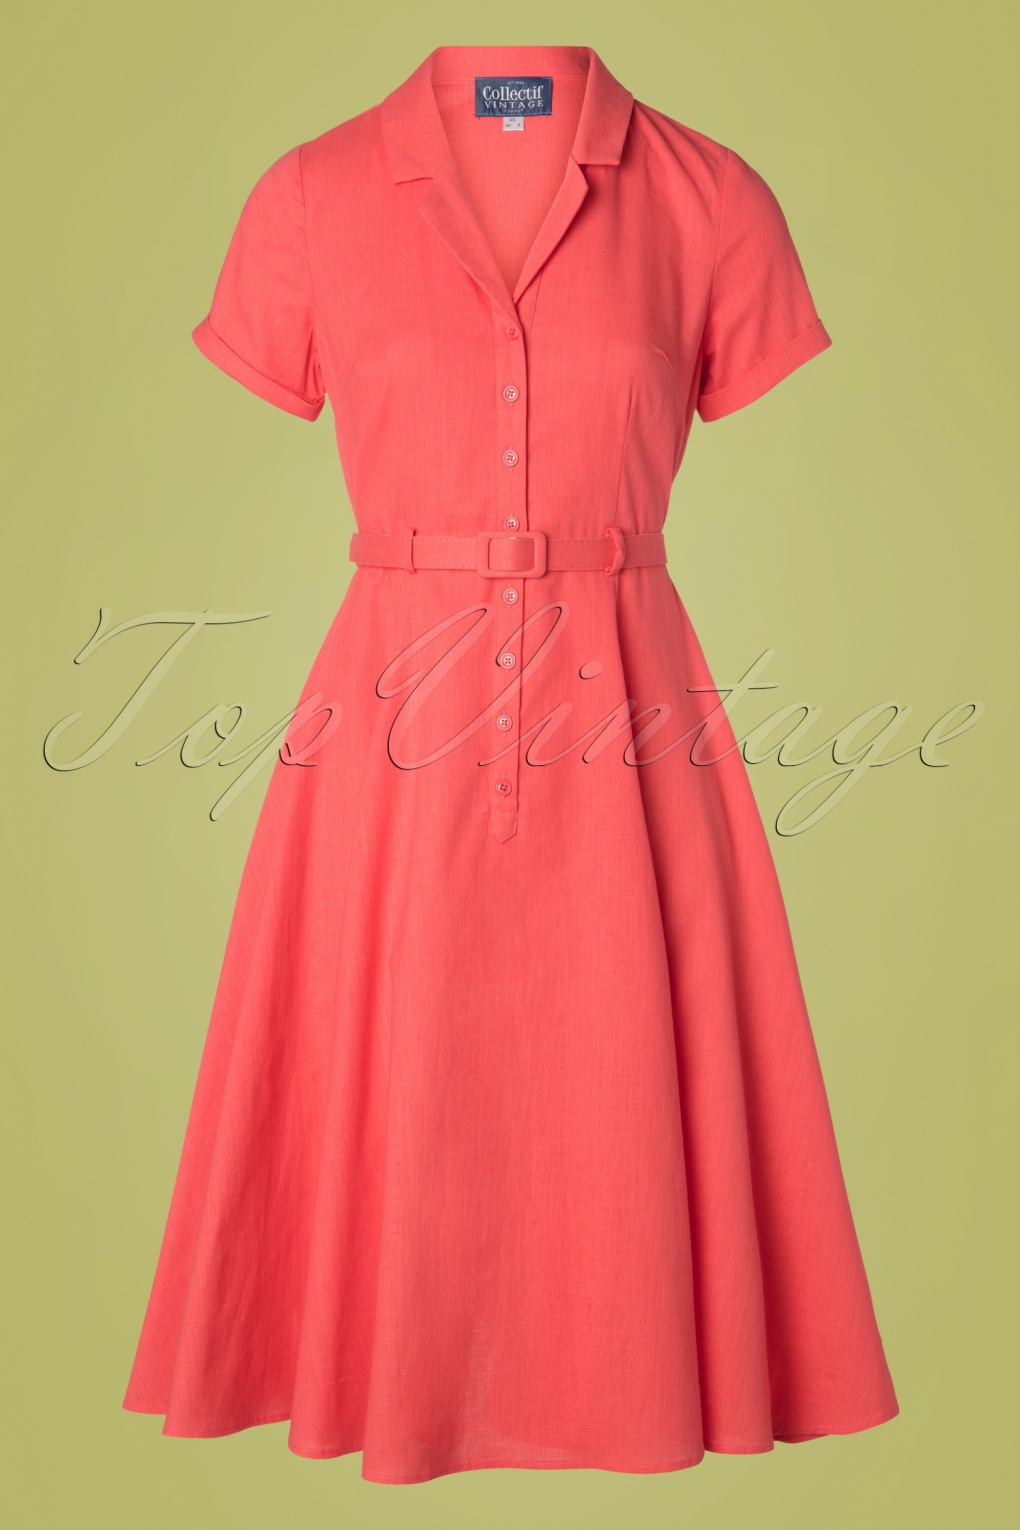 1950s Housewife Dress | 50s Day Dresses 50s Caterina Swing Dress in Coral Pink £72.01 AT vintagedancer.com